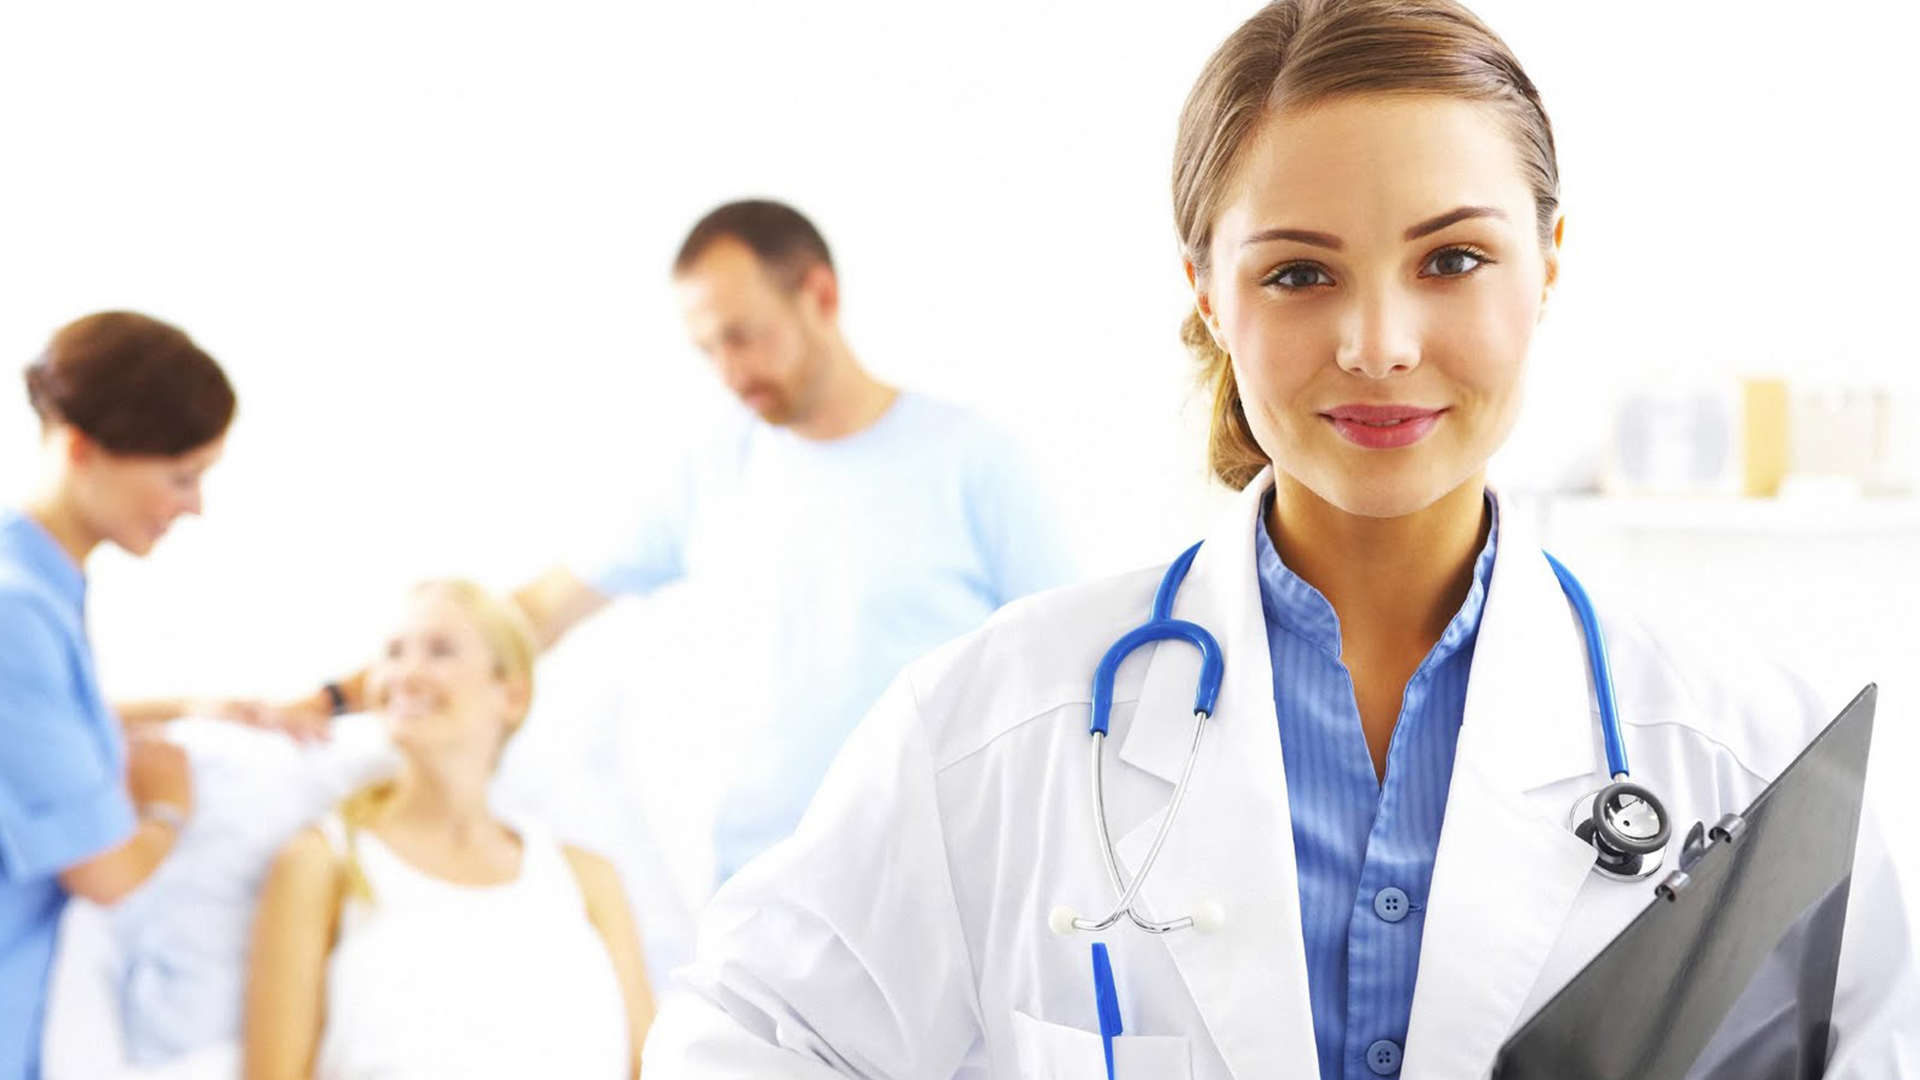 PNG HD Doctor Transparent HD Doctor.PNG Images..